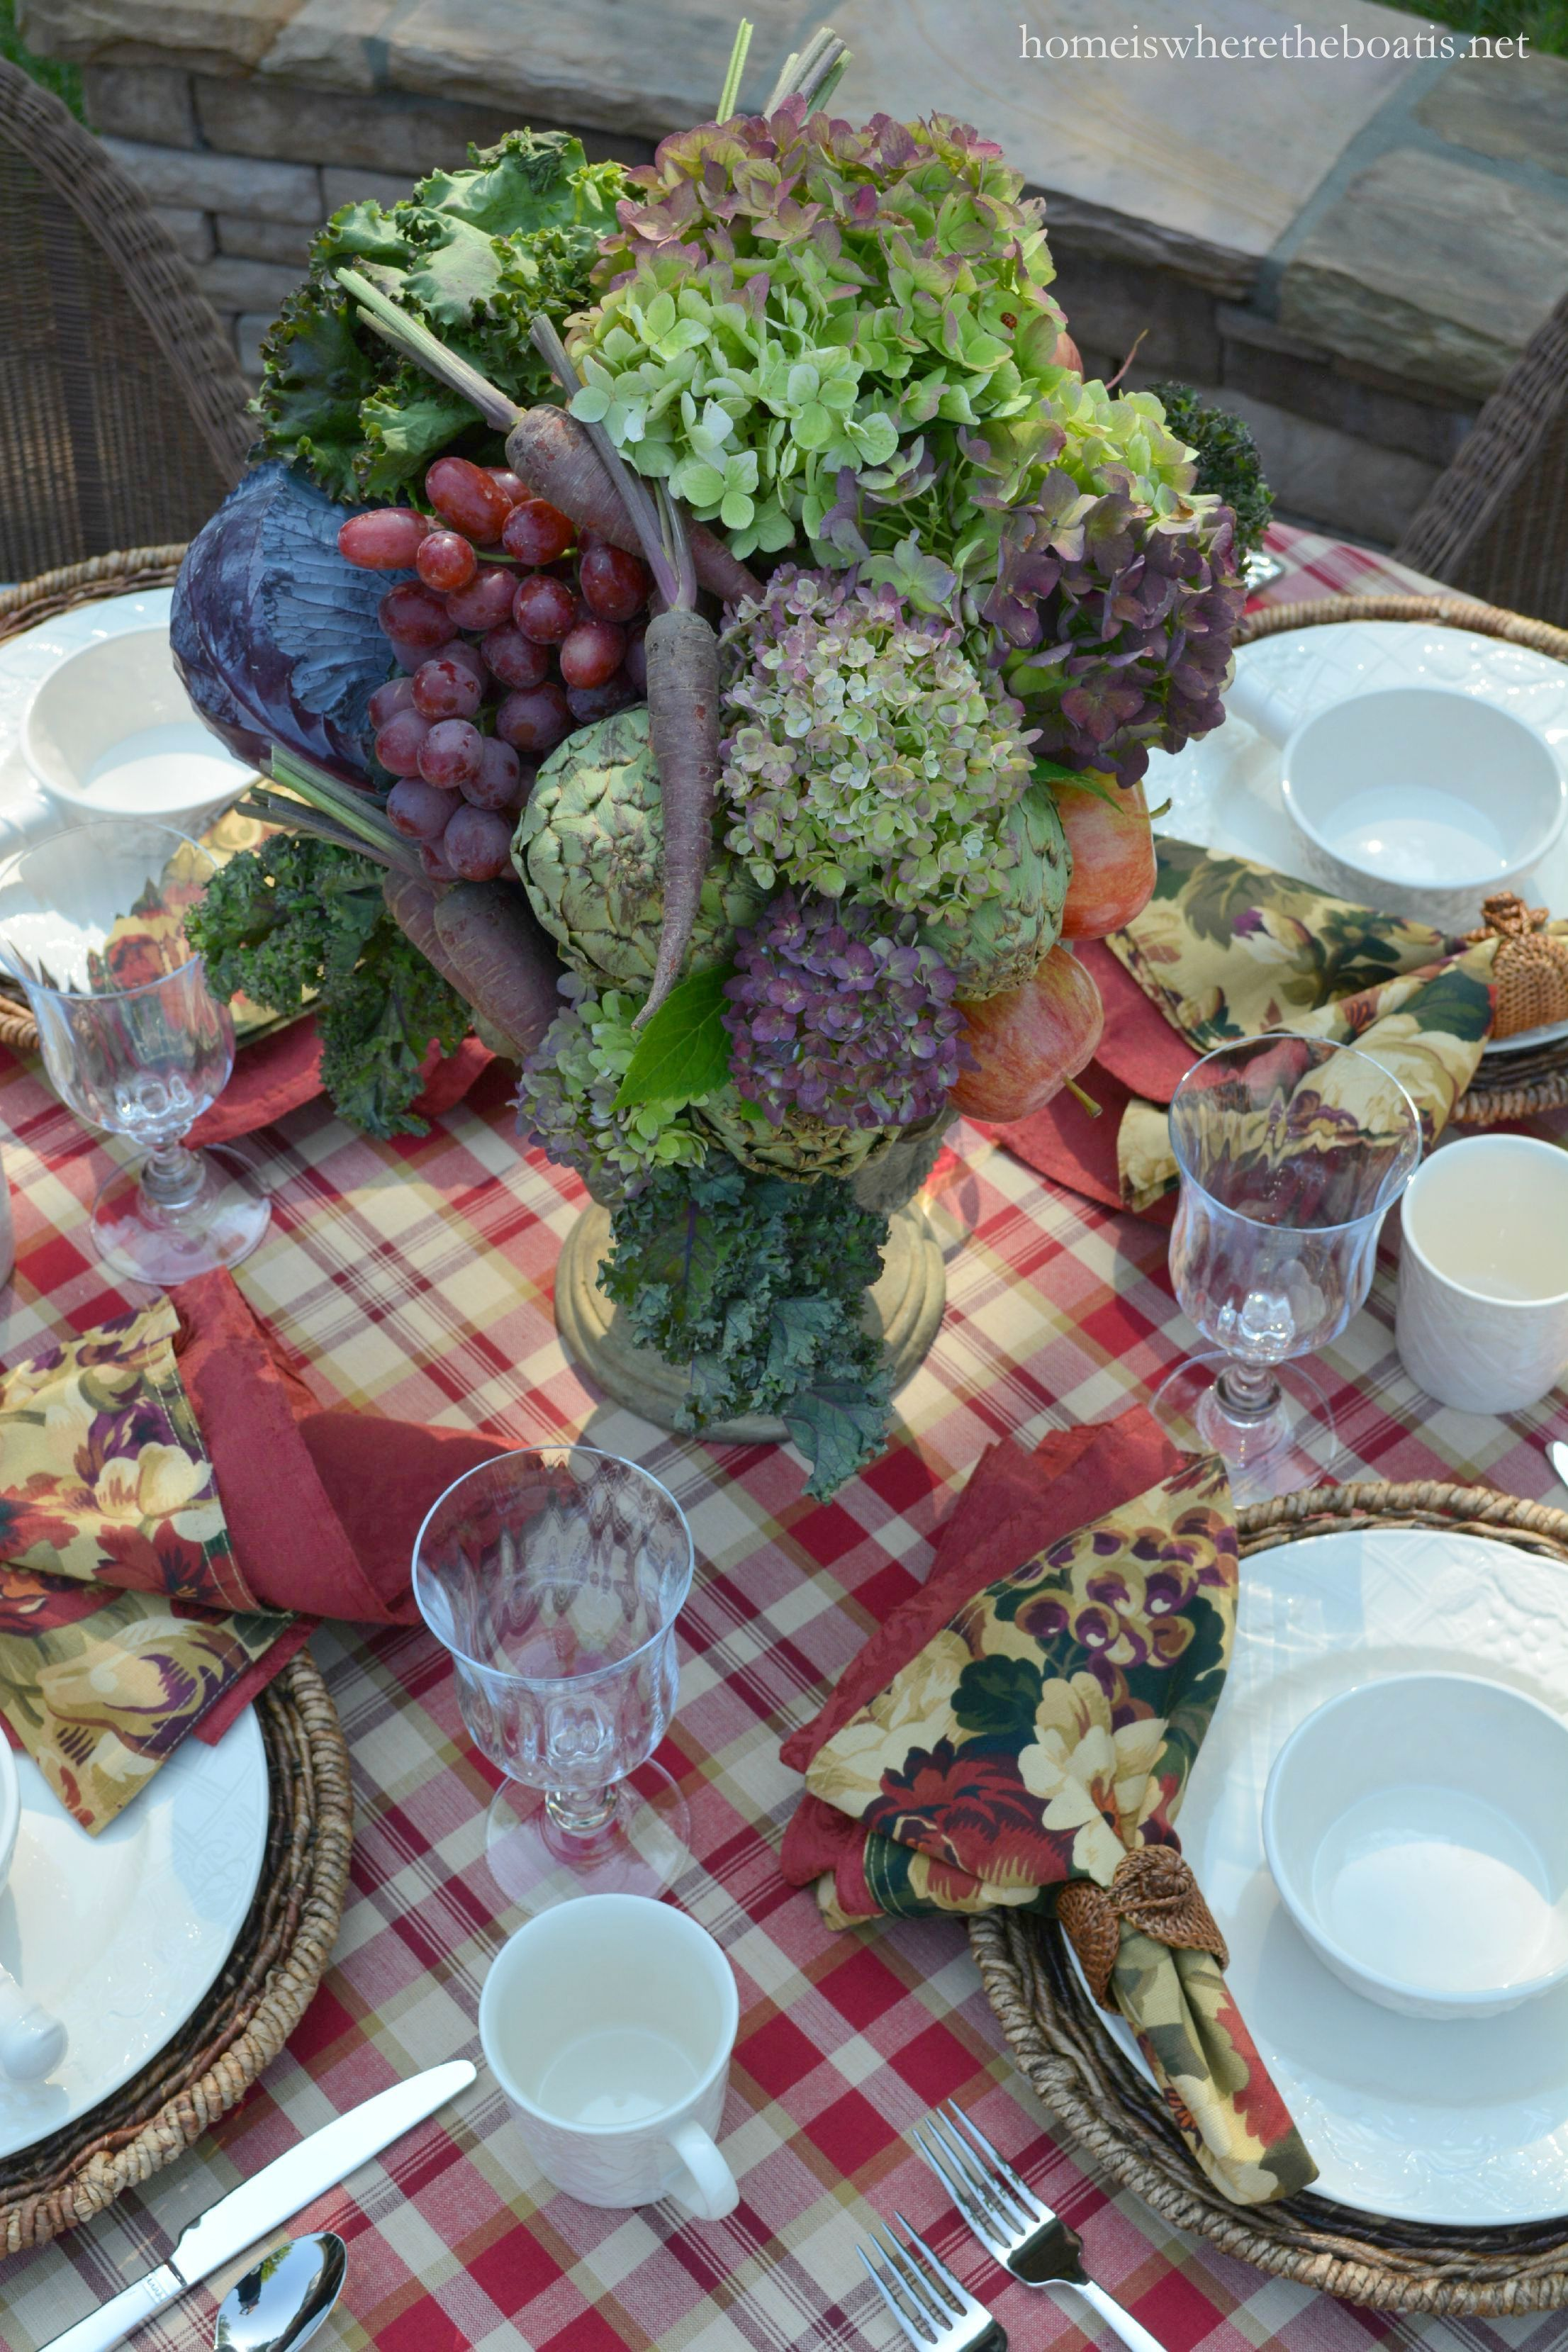 A Fruit and Vegetable Centerpiece and Mikasa English Countryside Dinnerware | 8/2015 homeiswheretheboatis.net #tablescape & A Fruit and Vegetable Centerpiece and Mikasa English Countryside ...